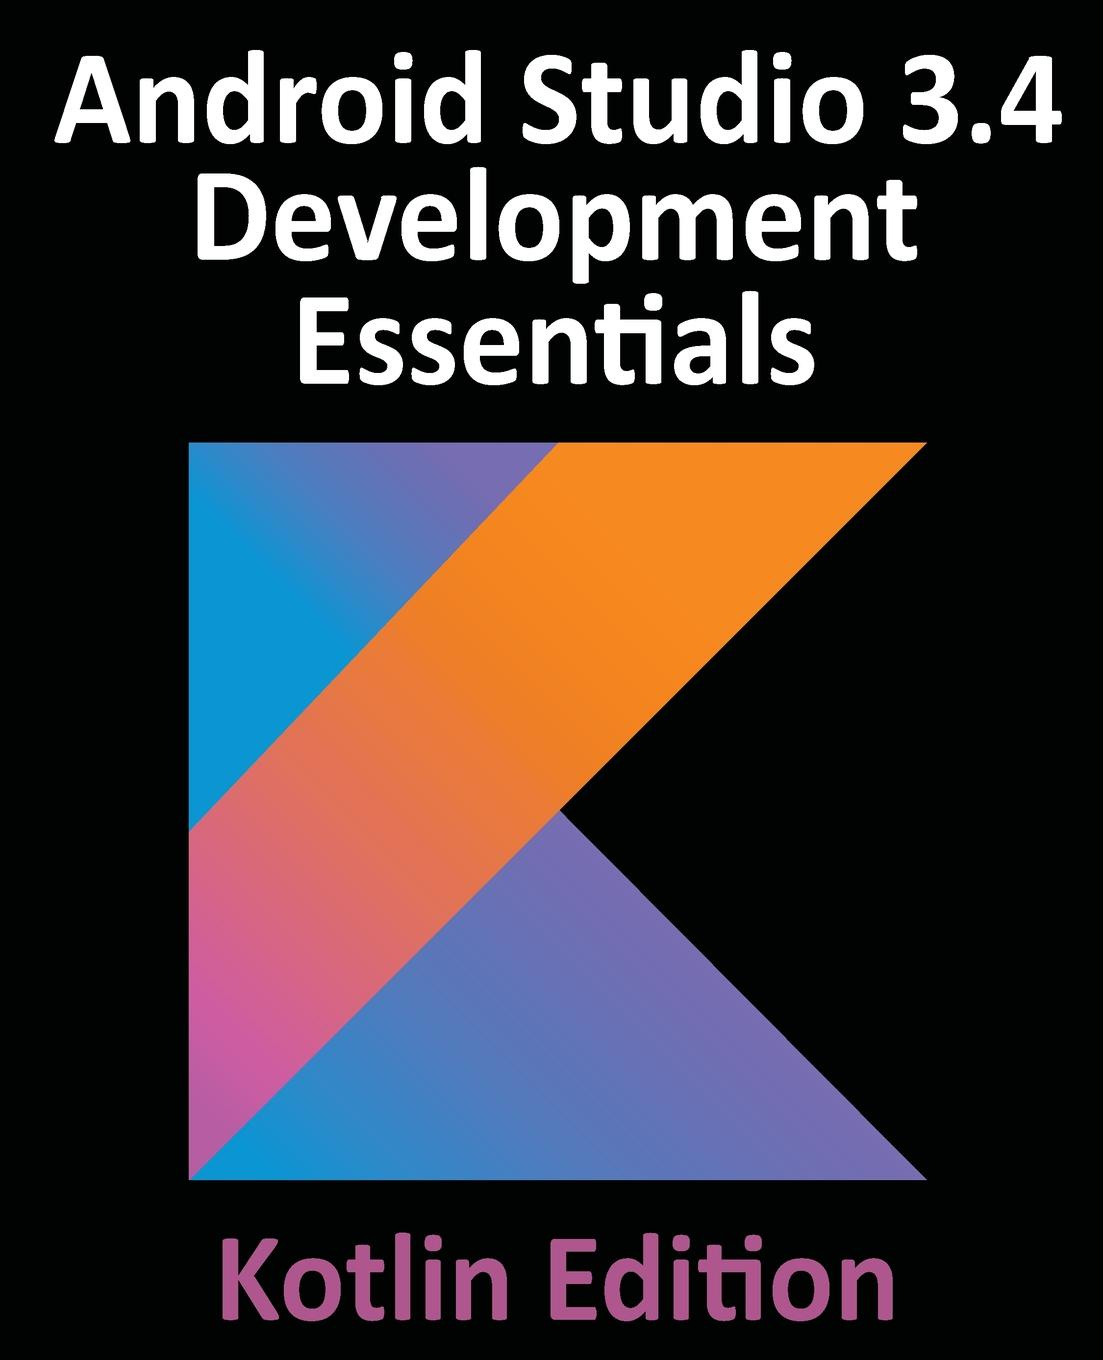 Neil Smyth Android Studio 3.4 Development Essentials - Kotlin Edition. Developing Android 9 Apps Using Android Studio 3.4, Kotlin and Android Jetpack книга android studio